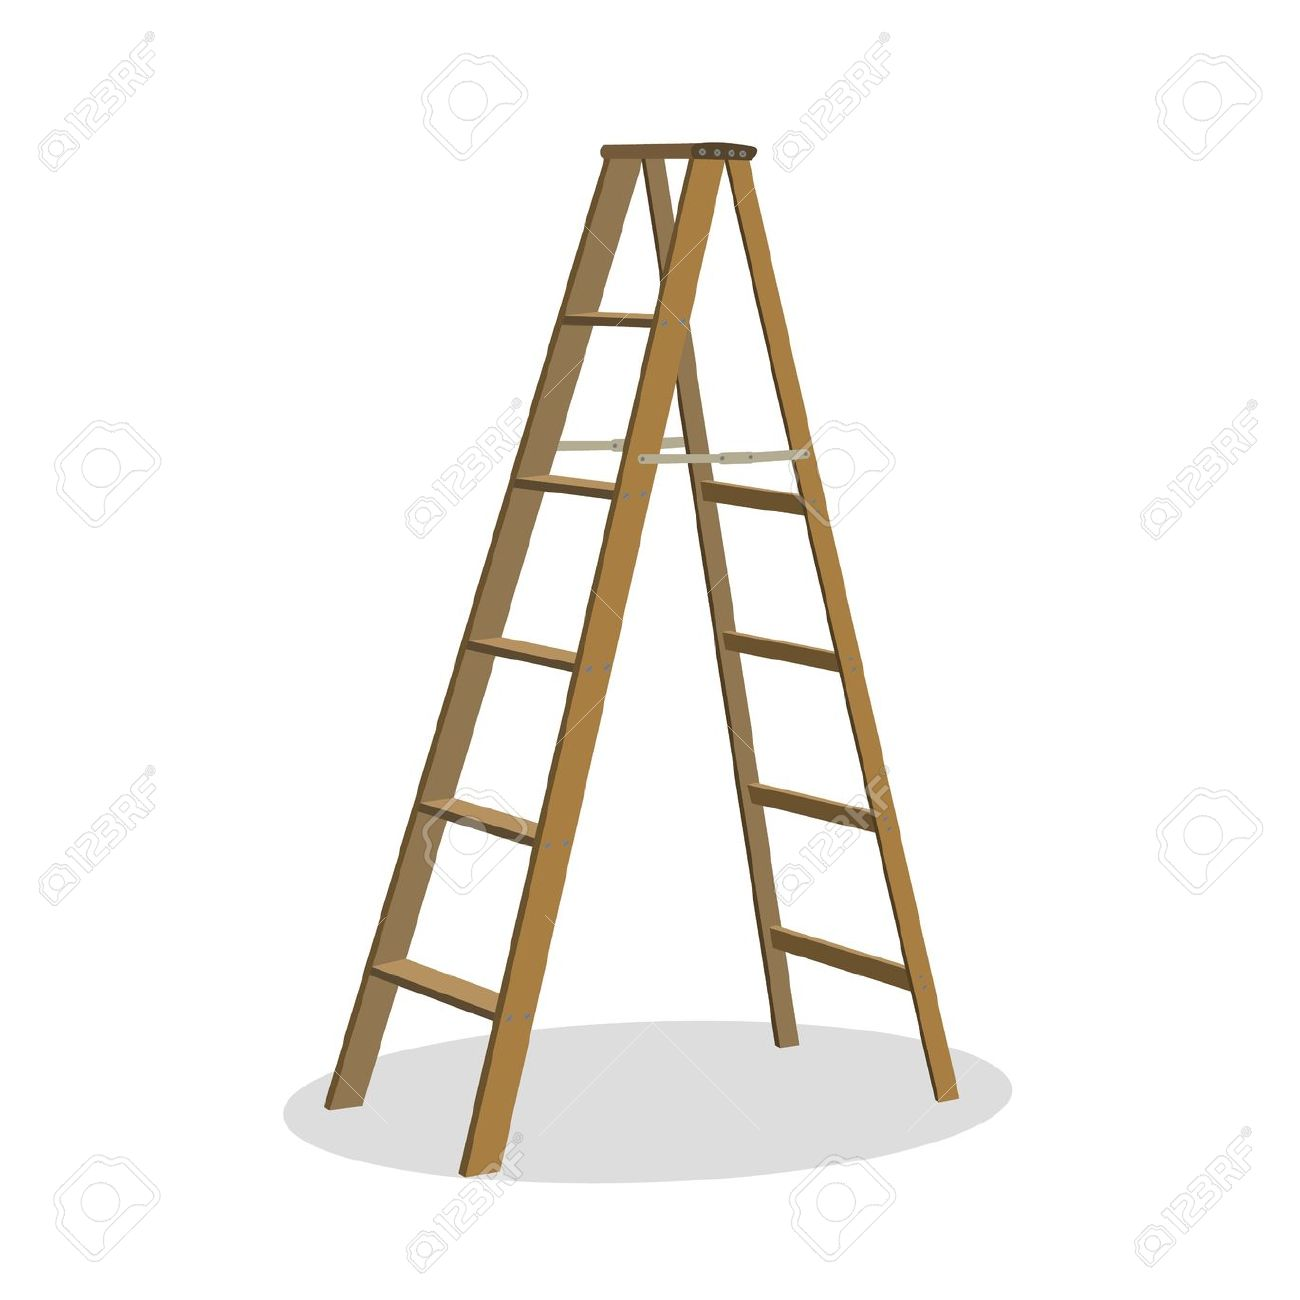 1,296 Stepladder Stock Vector Illustration And Royalty Free.